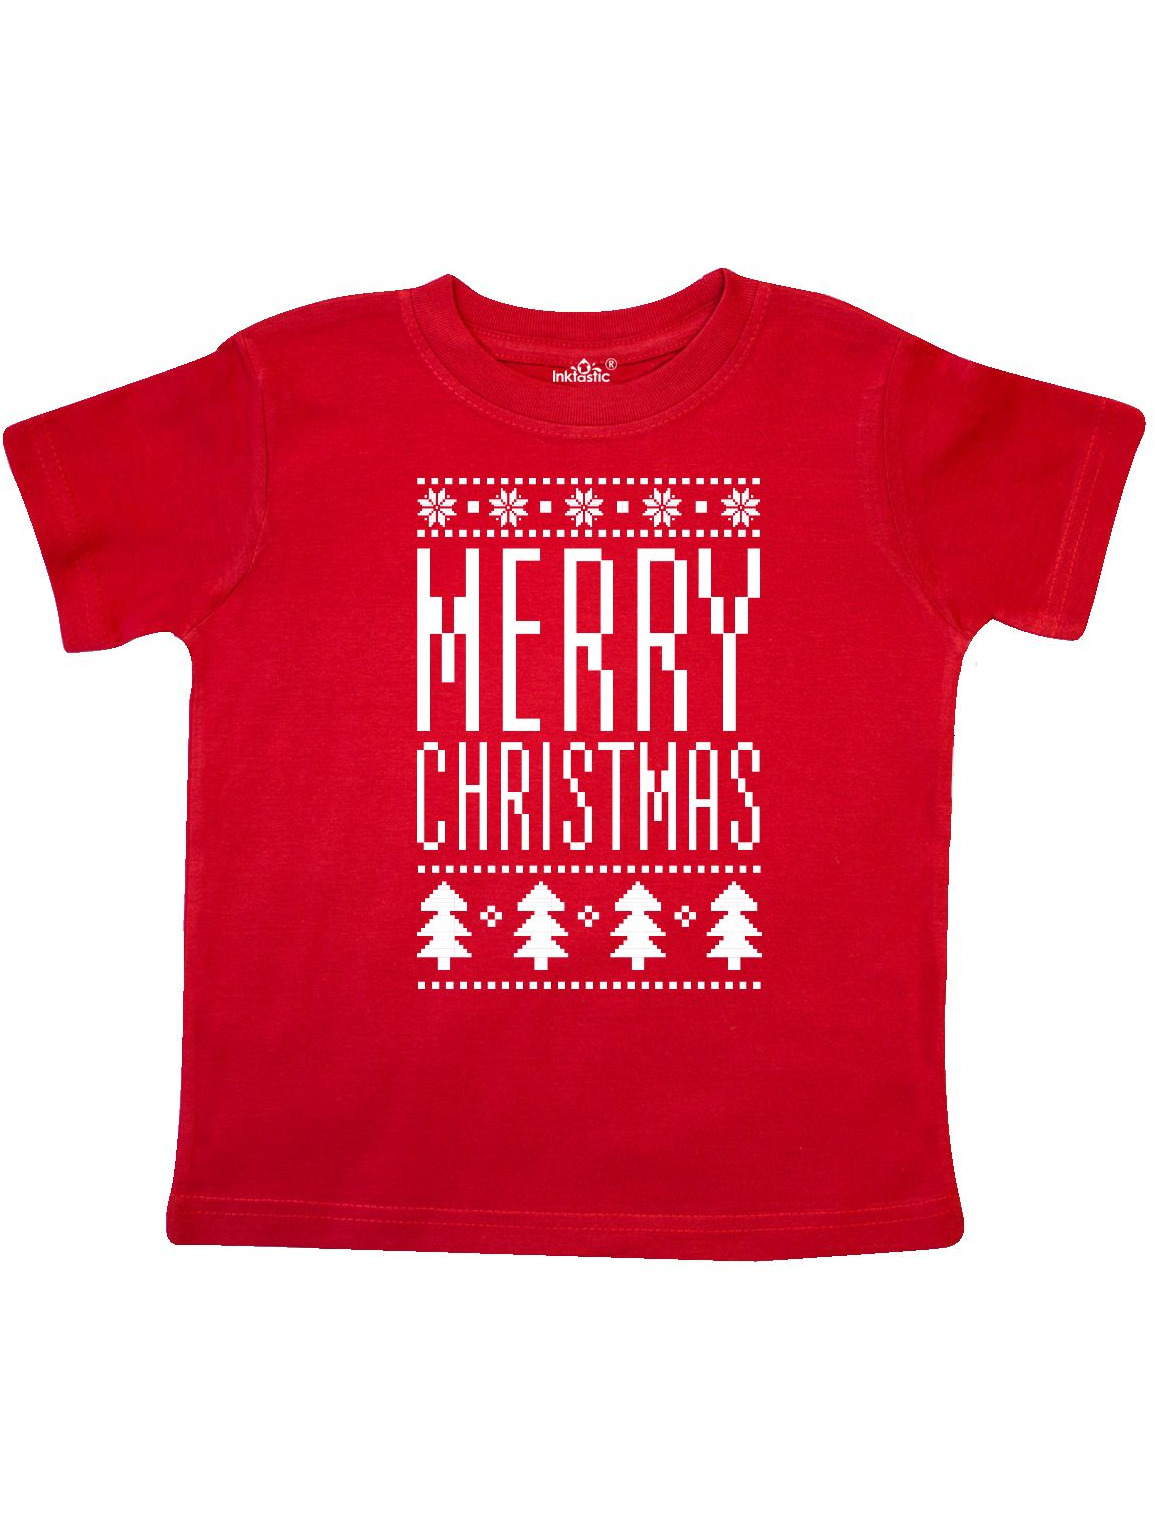 Merry Christmas ugly knitted sweater style Toddler T-Shirt